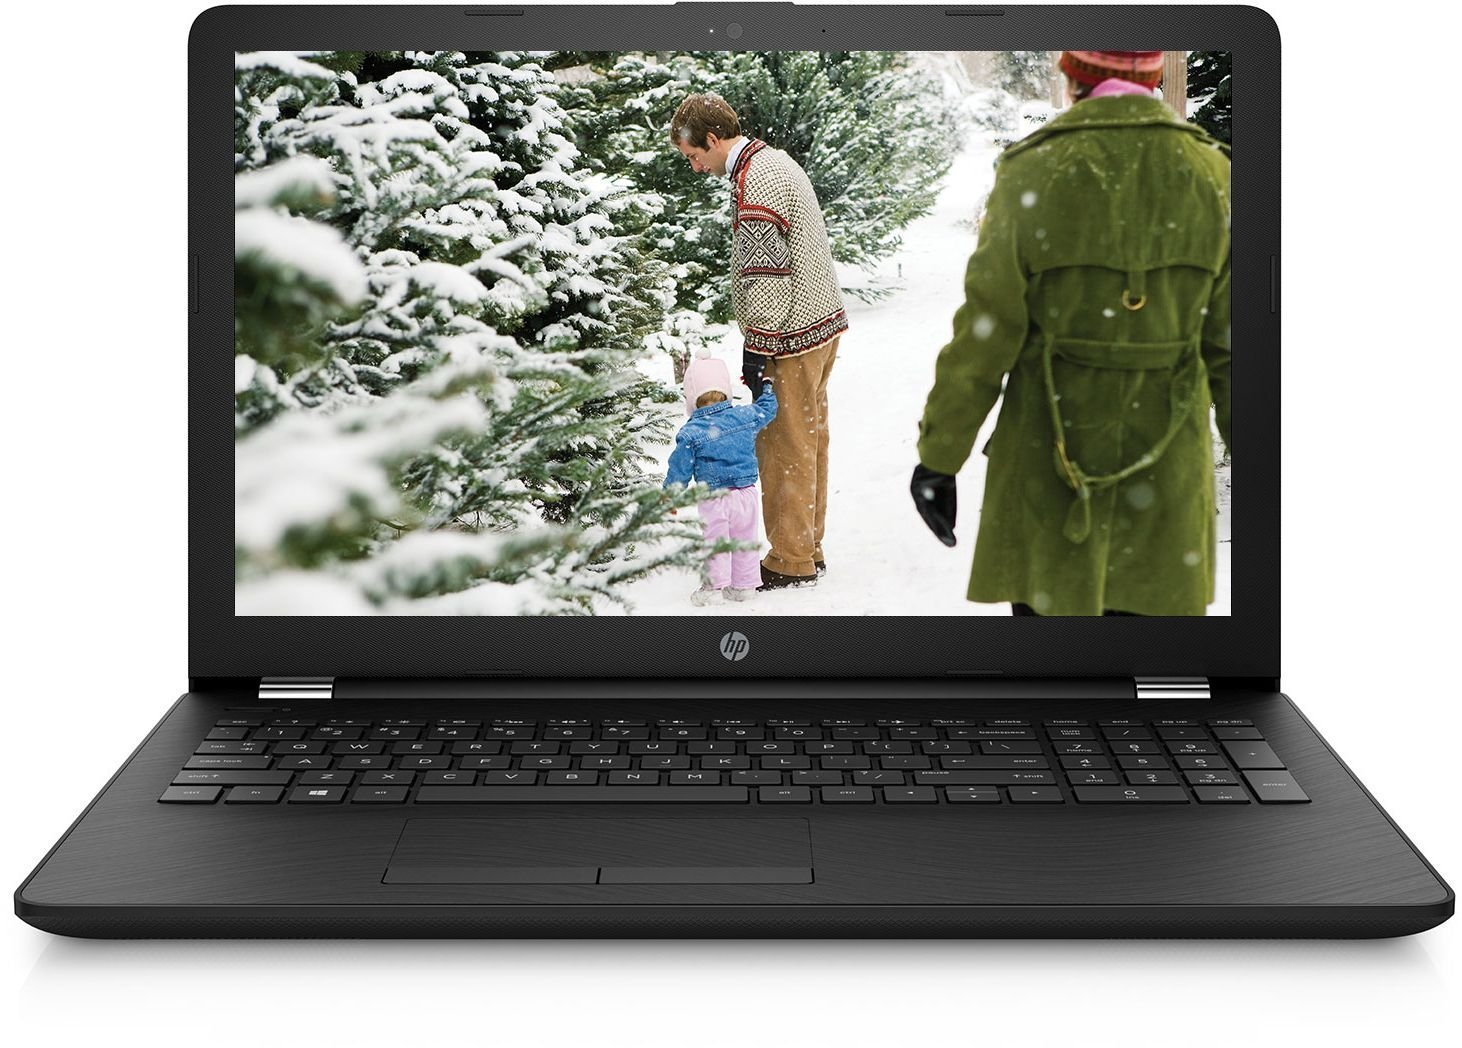 HP 15-bs658TU 15.6-inch Laptop (7th Gen Core i3-7100U/4GB/1TB/15.6 Full HD Display / Windows 10 Home, Integrated Graphics),